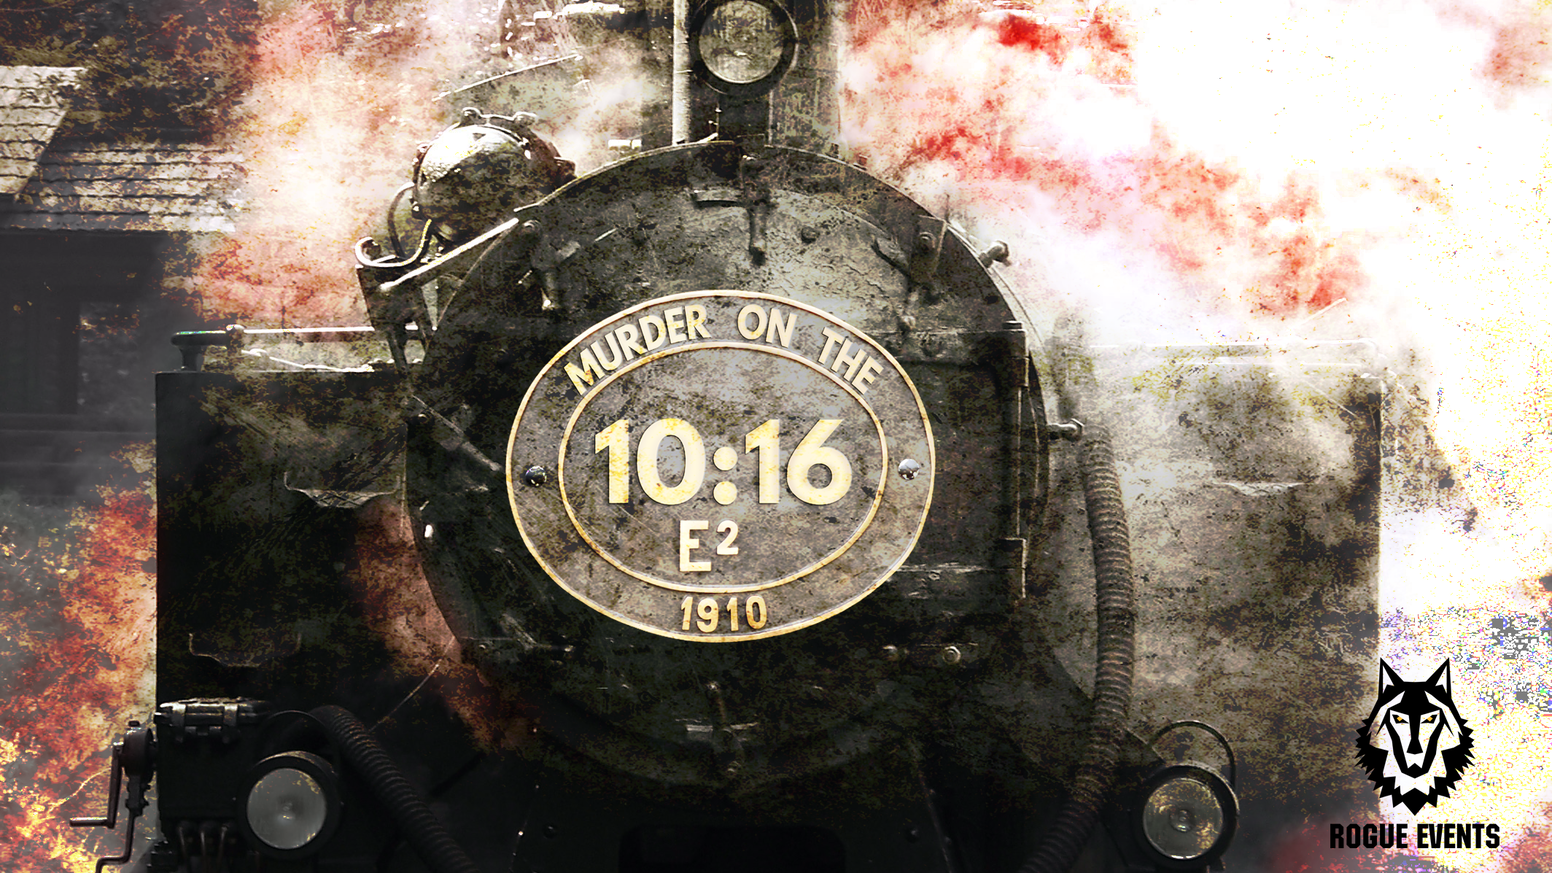 A live action twist on a classic Murder Mystery, backers will become suspects on a heritage steam train destined for horror!